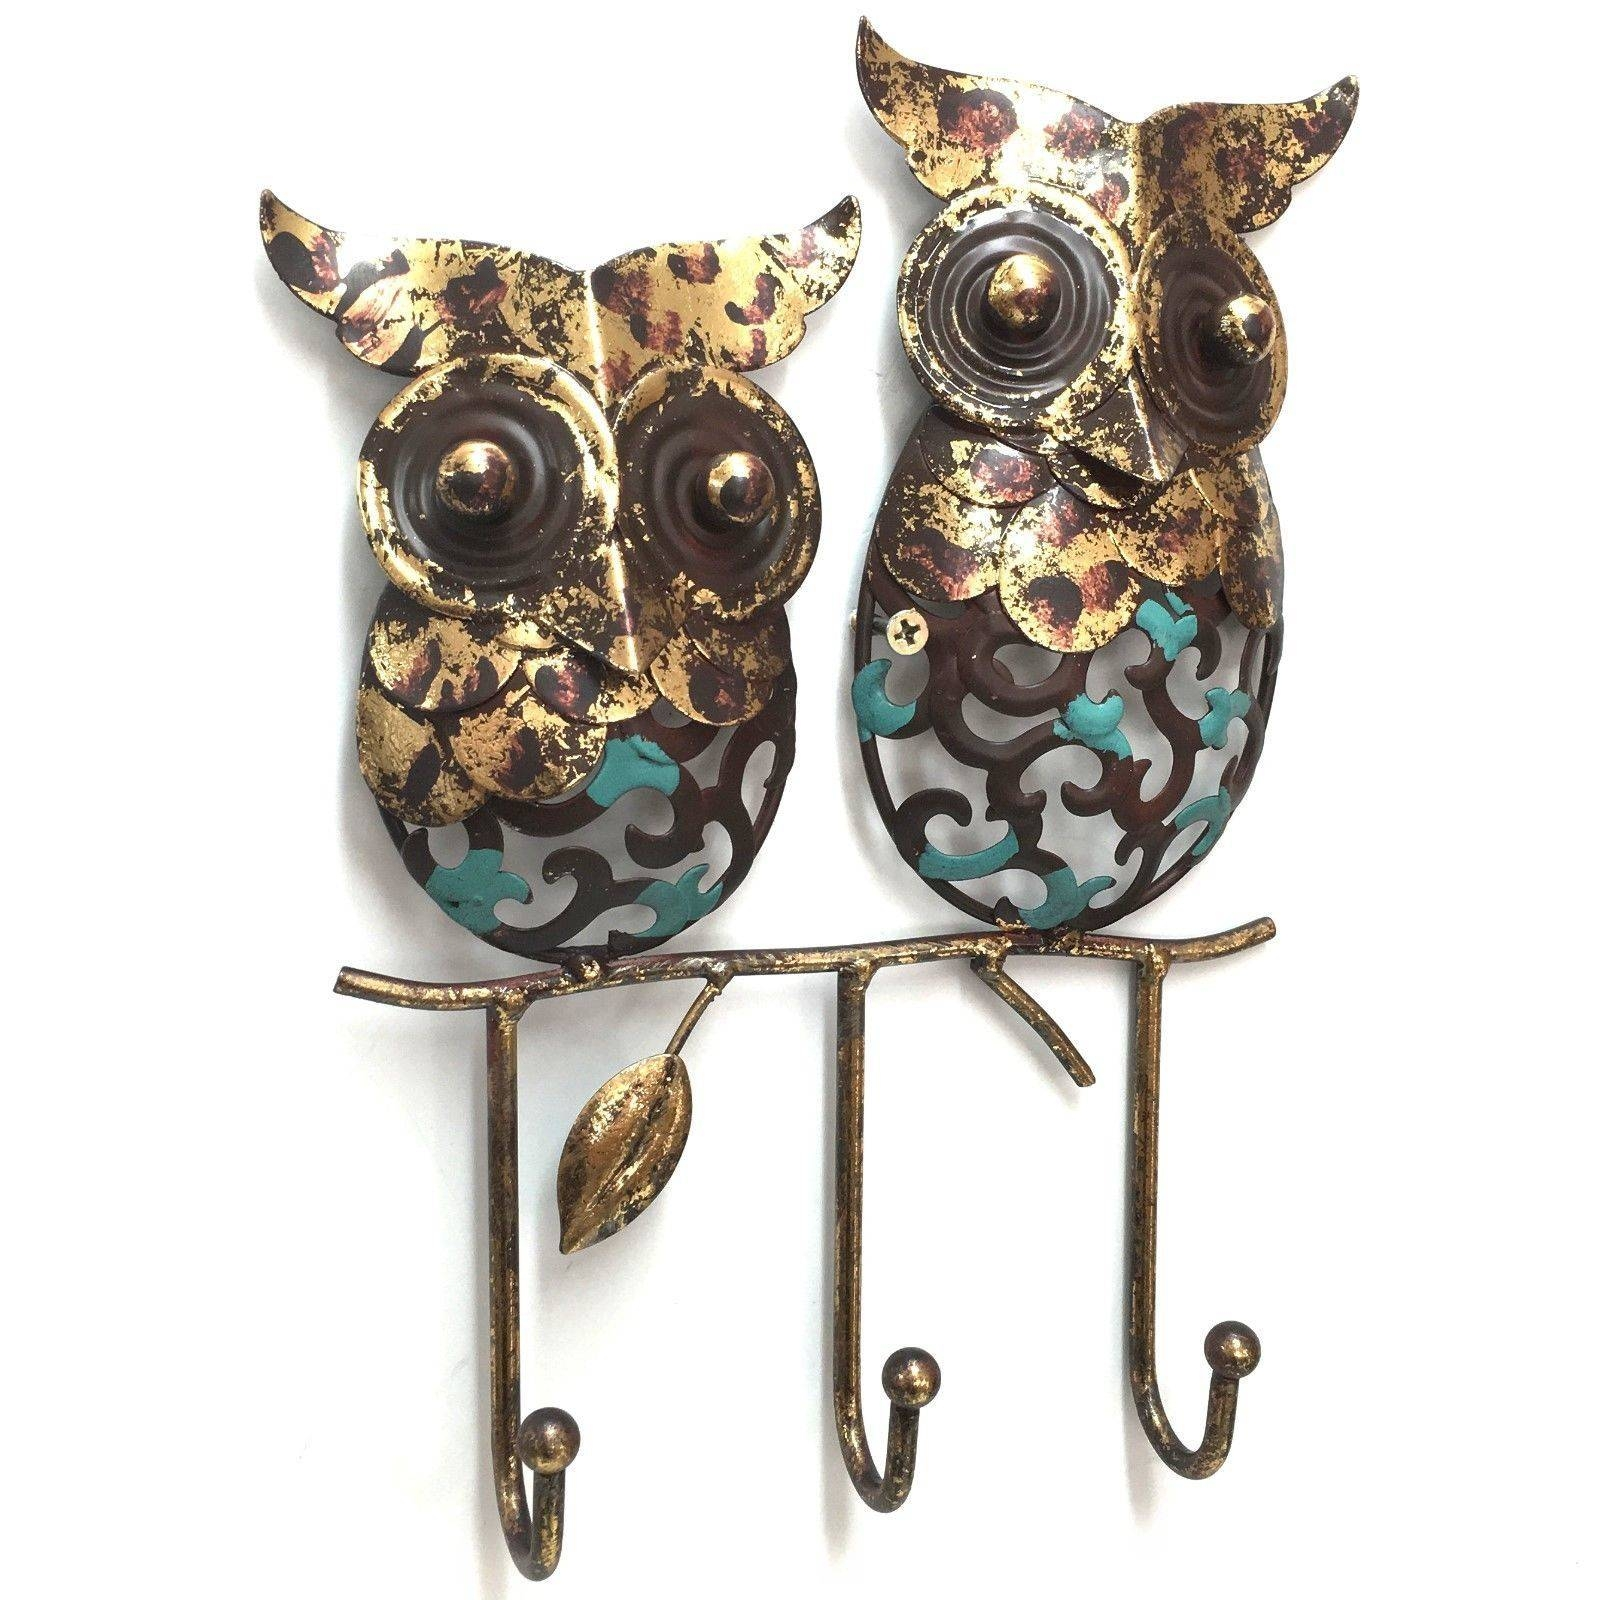 Owl Metal Wall Art Hooks Intended For Most Up To Date Owls Metal Wall Art (View 9 of 20)